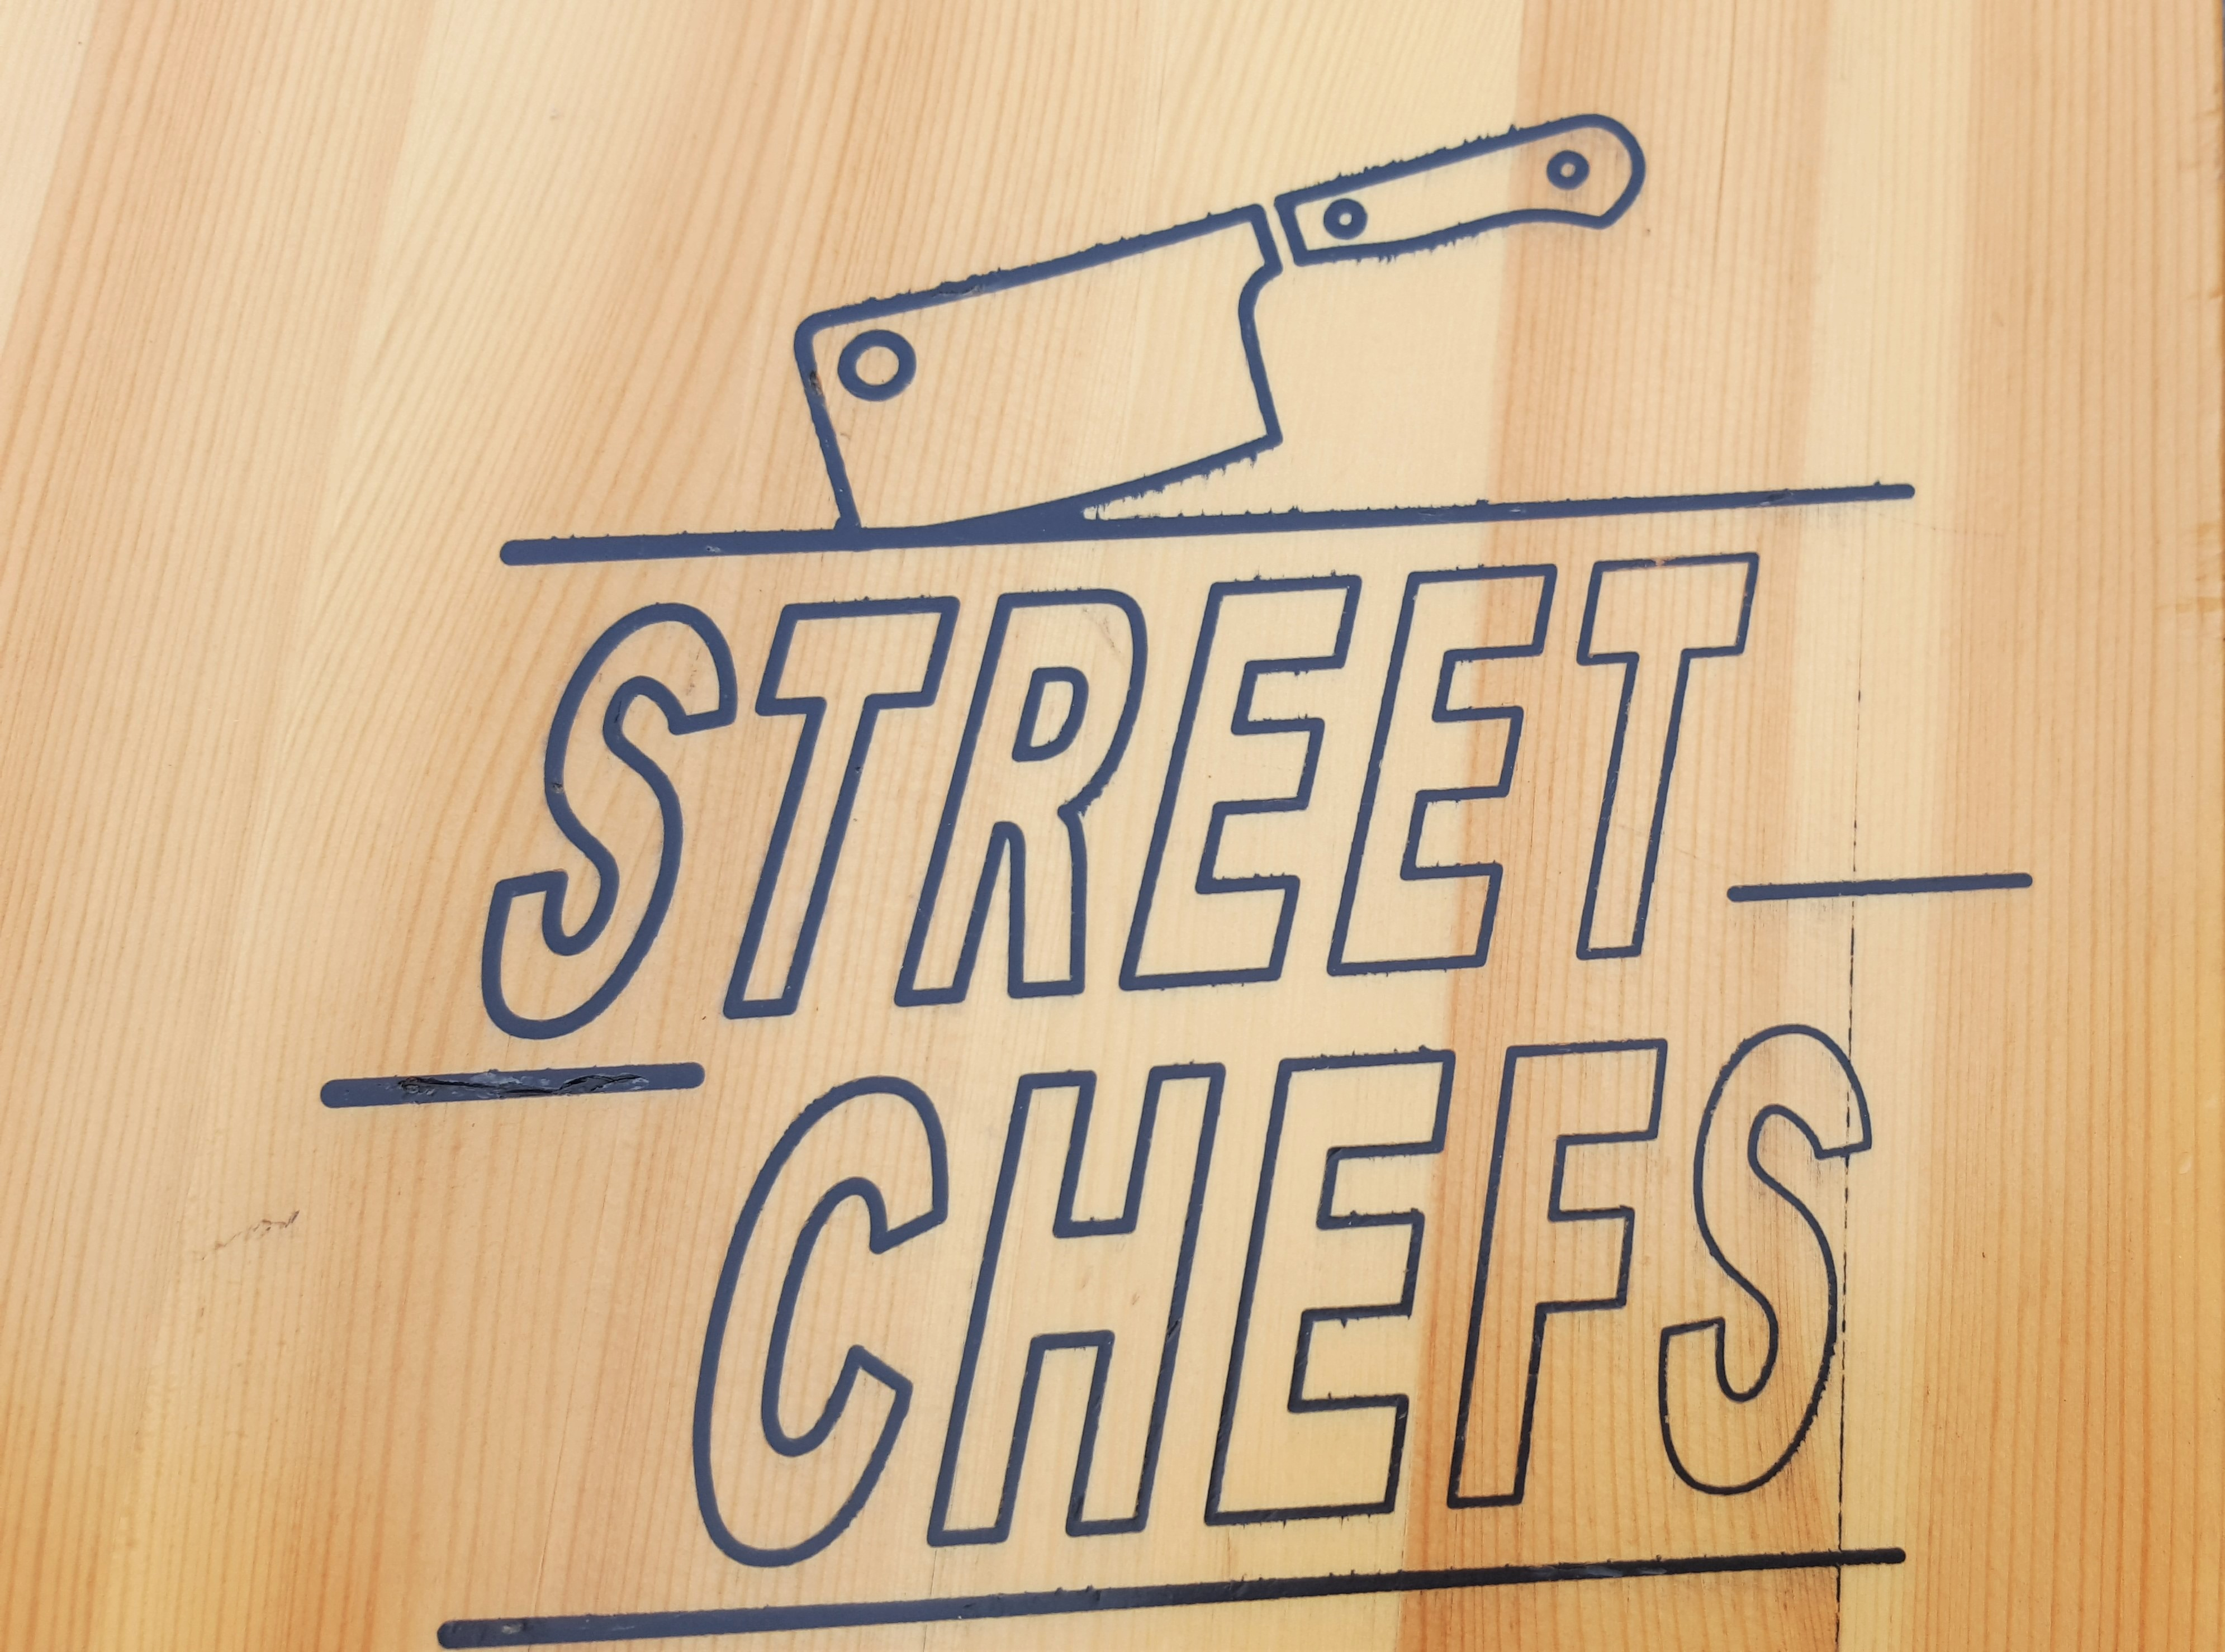 Street Chefs logo by placescases.com